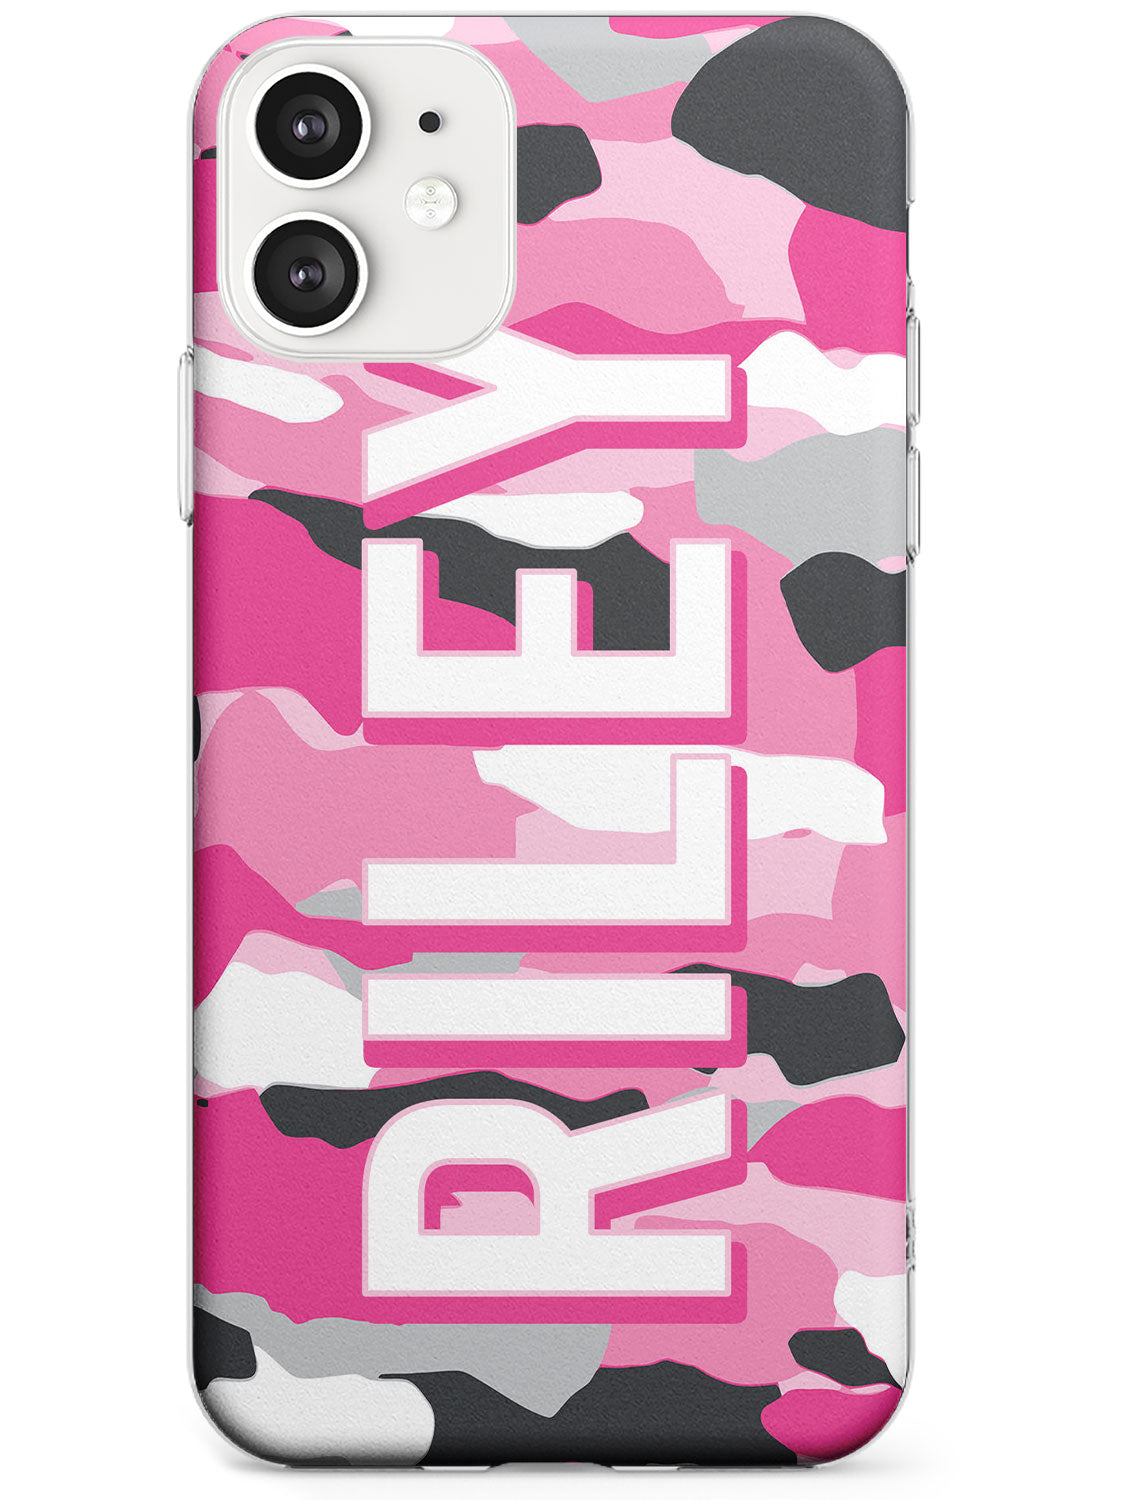 Pink & Grey Camo iPhone Case by Case Warehouse ®